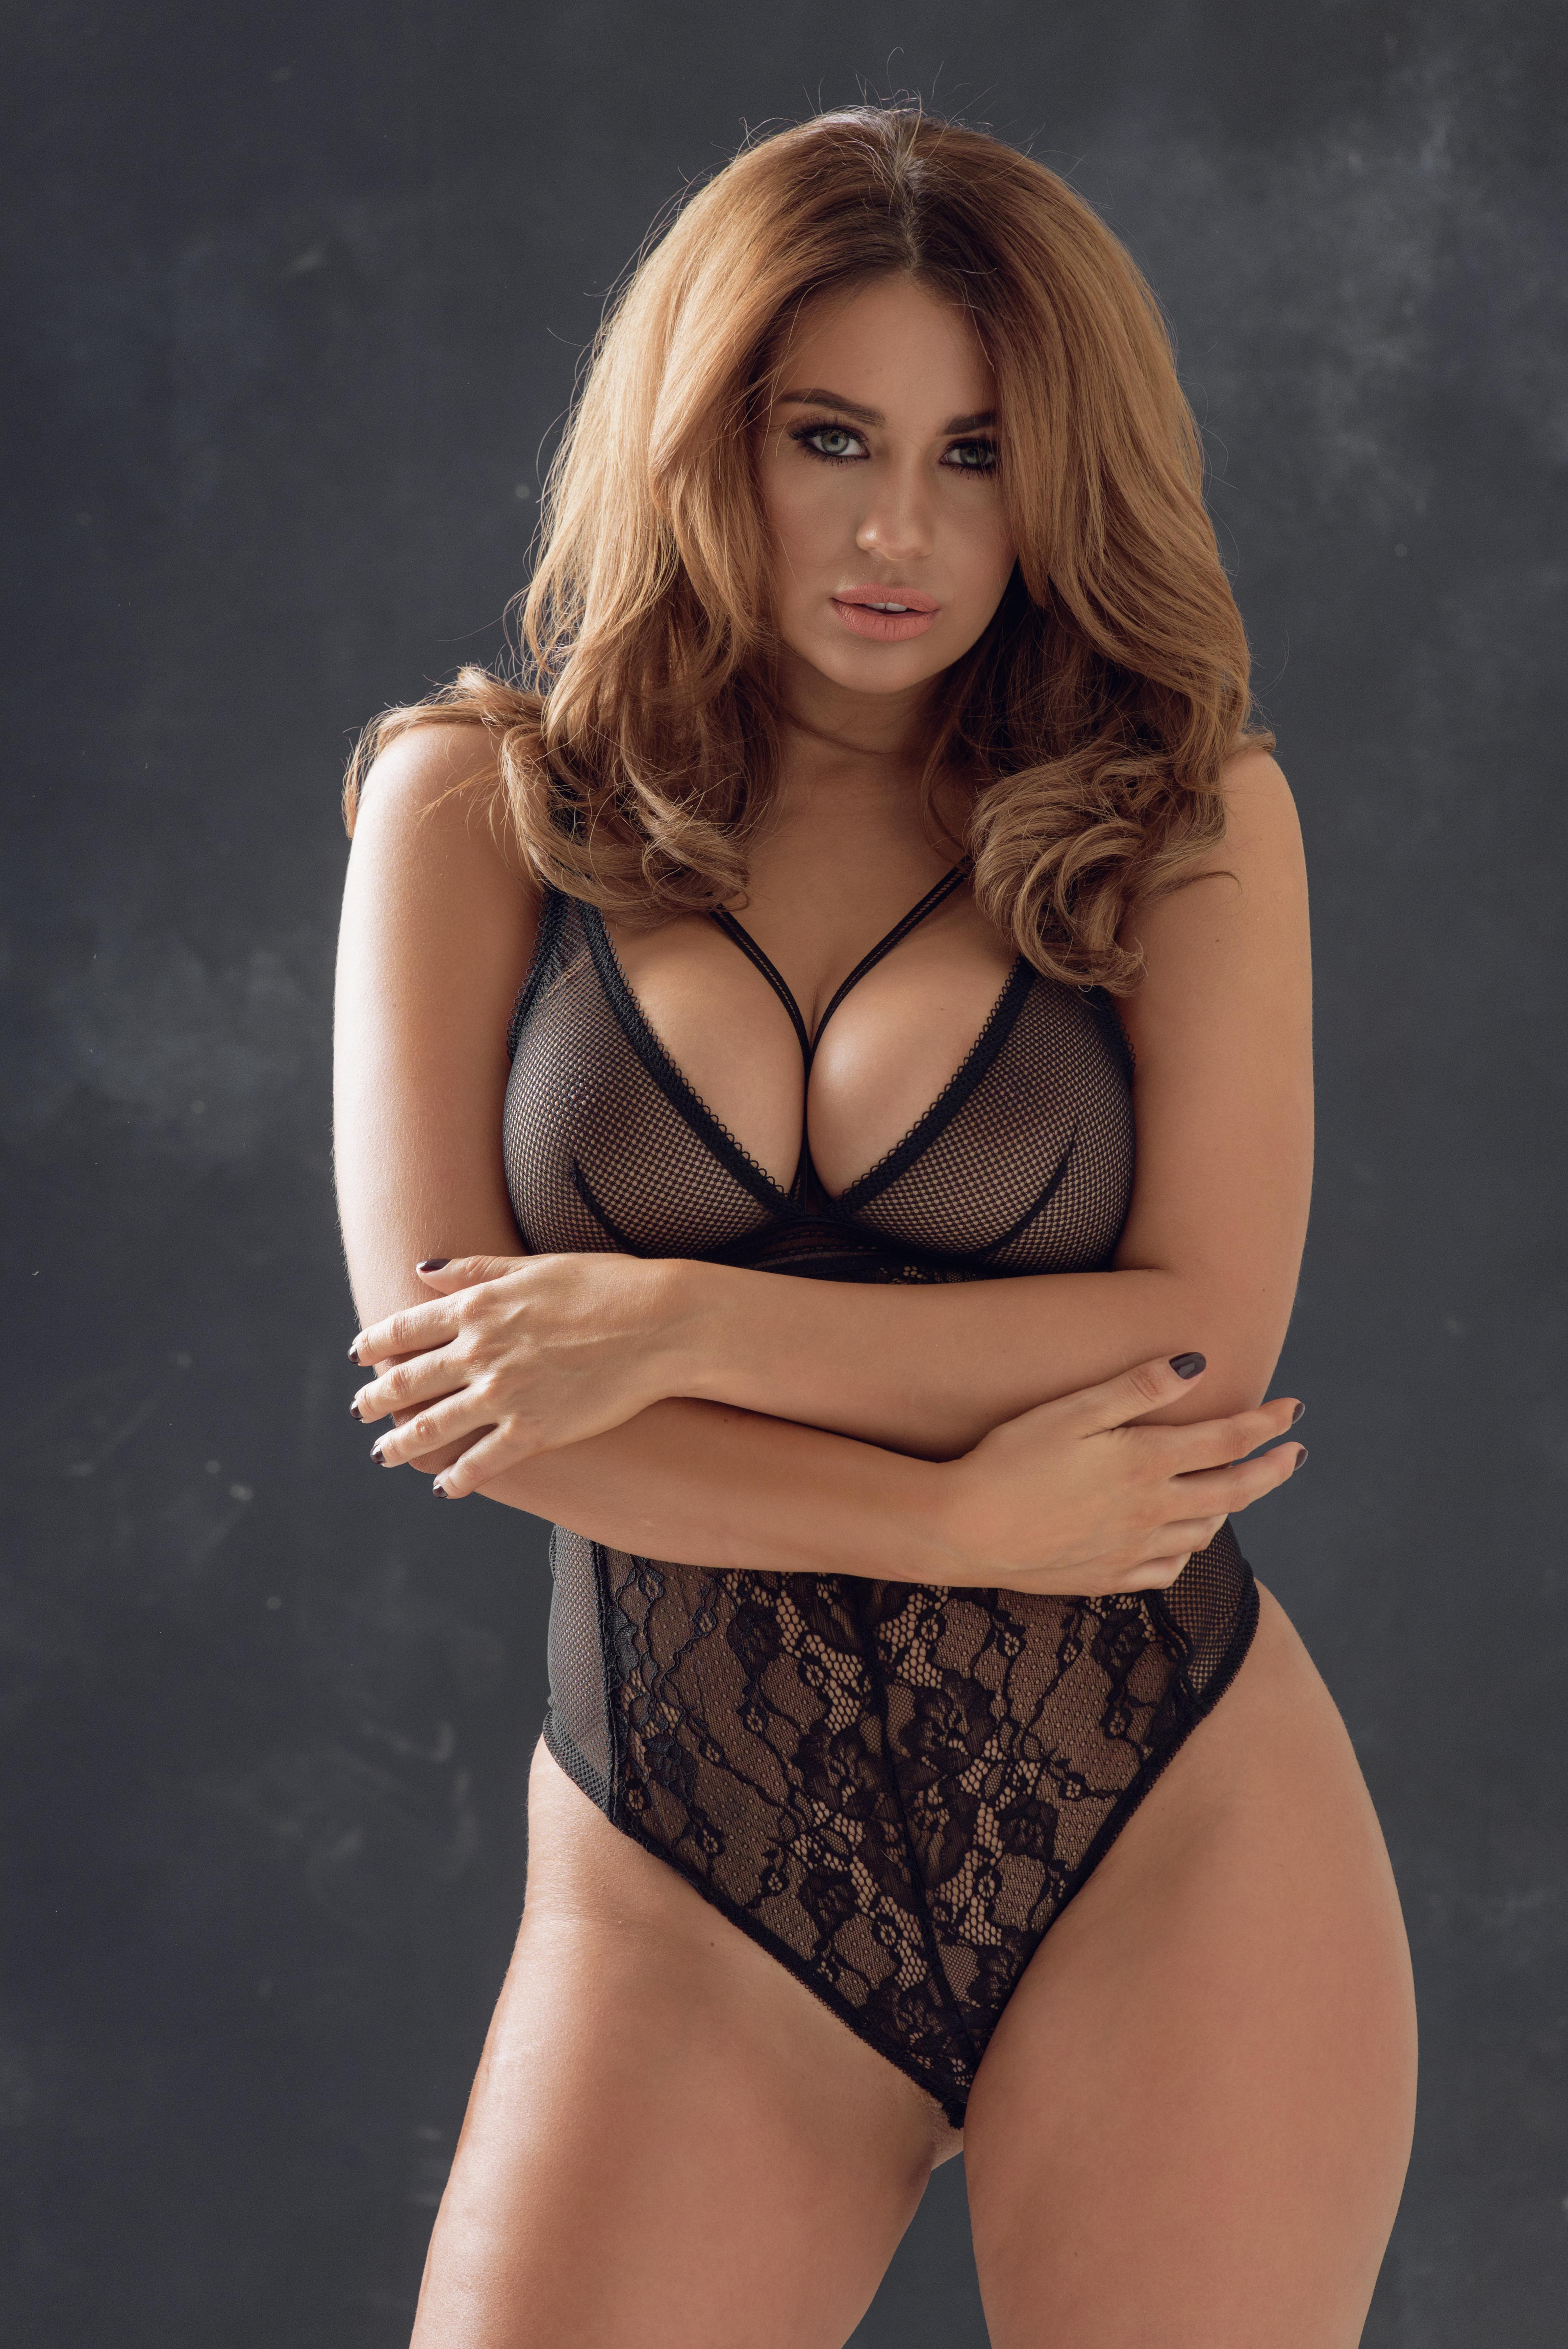 Holly Peers Page 3 photo 22